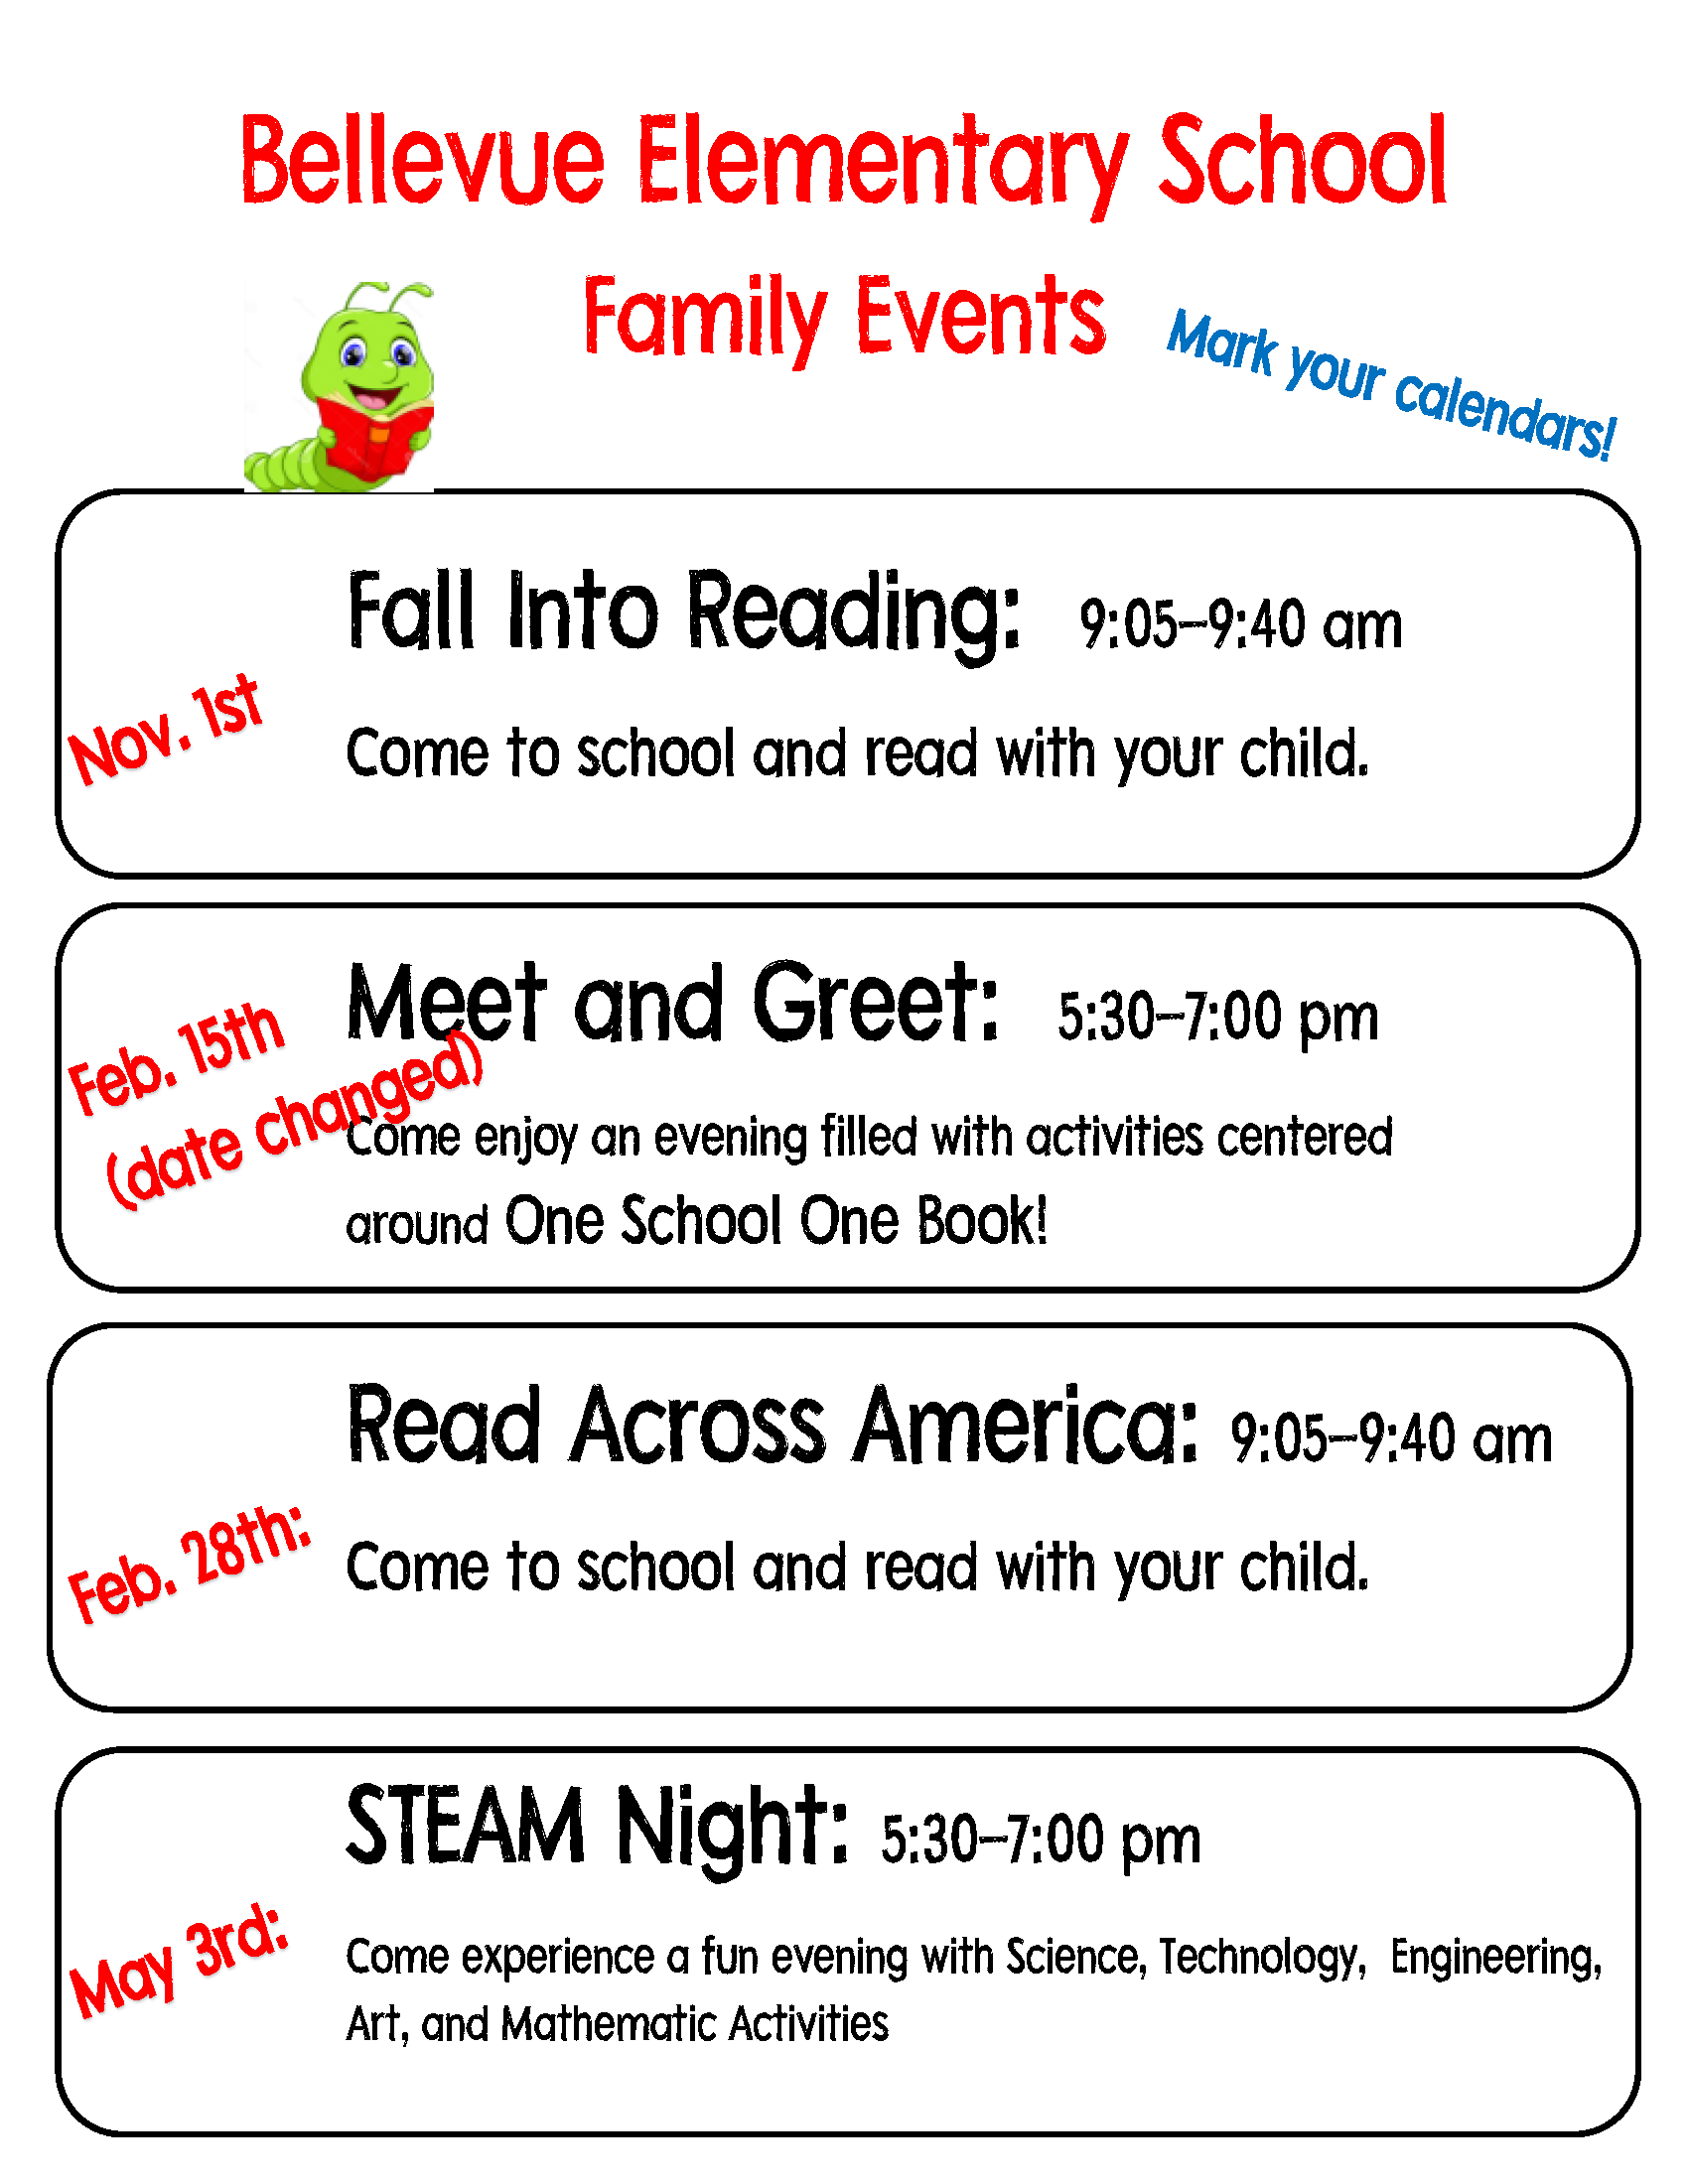 BES Family Events